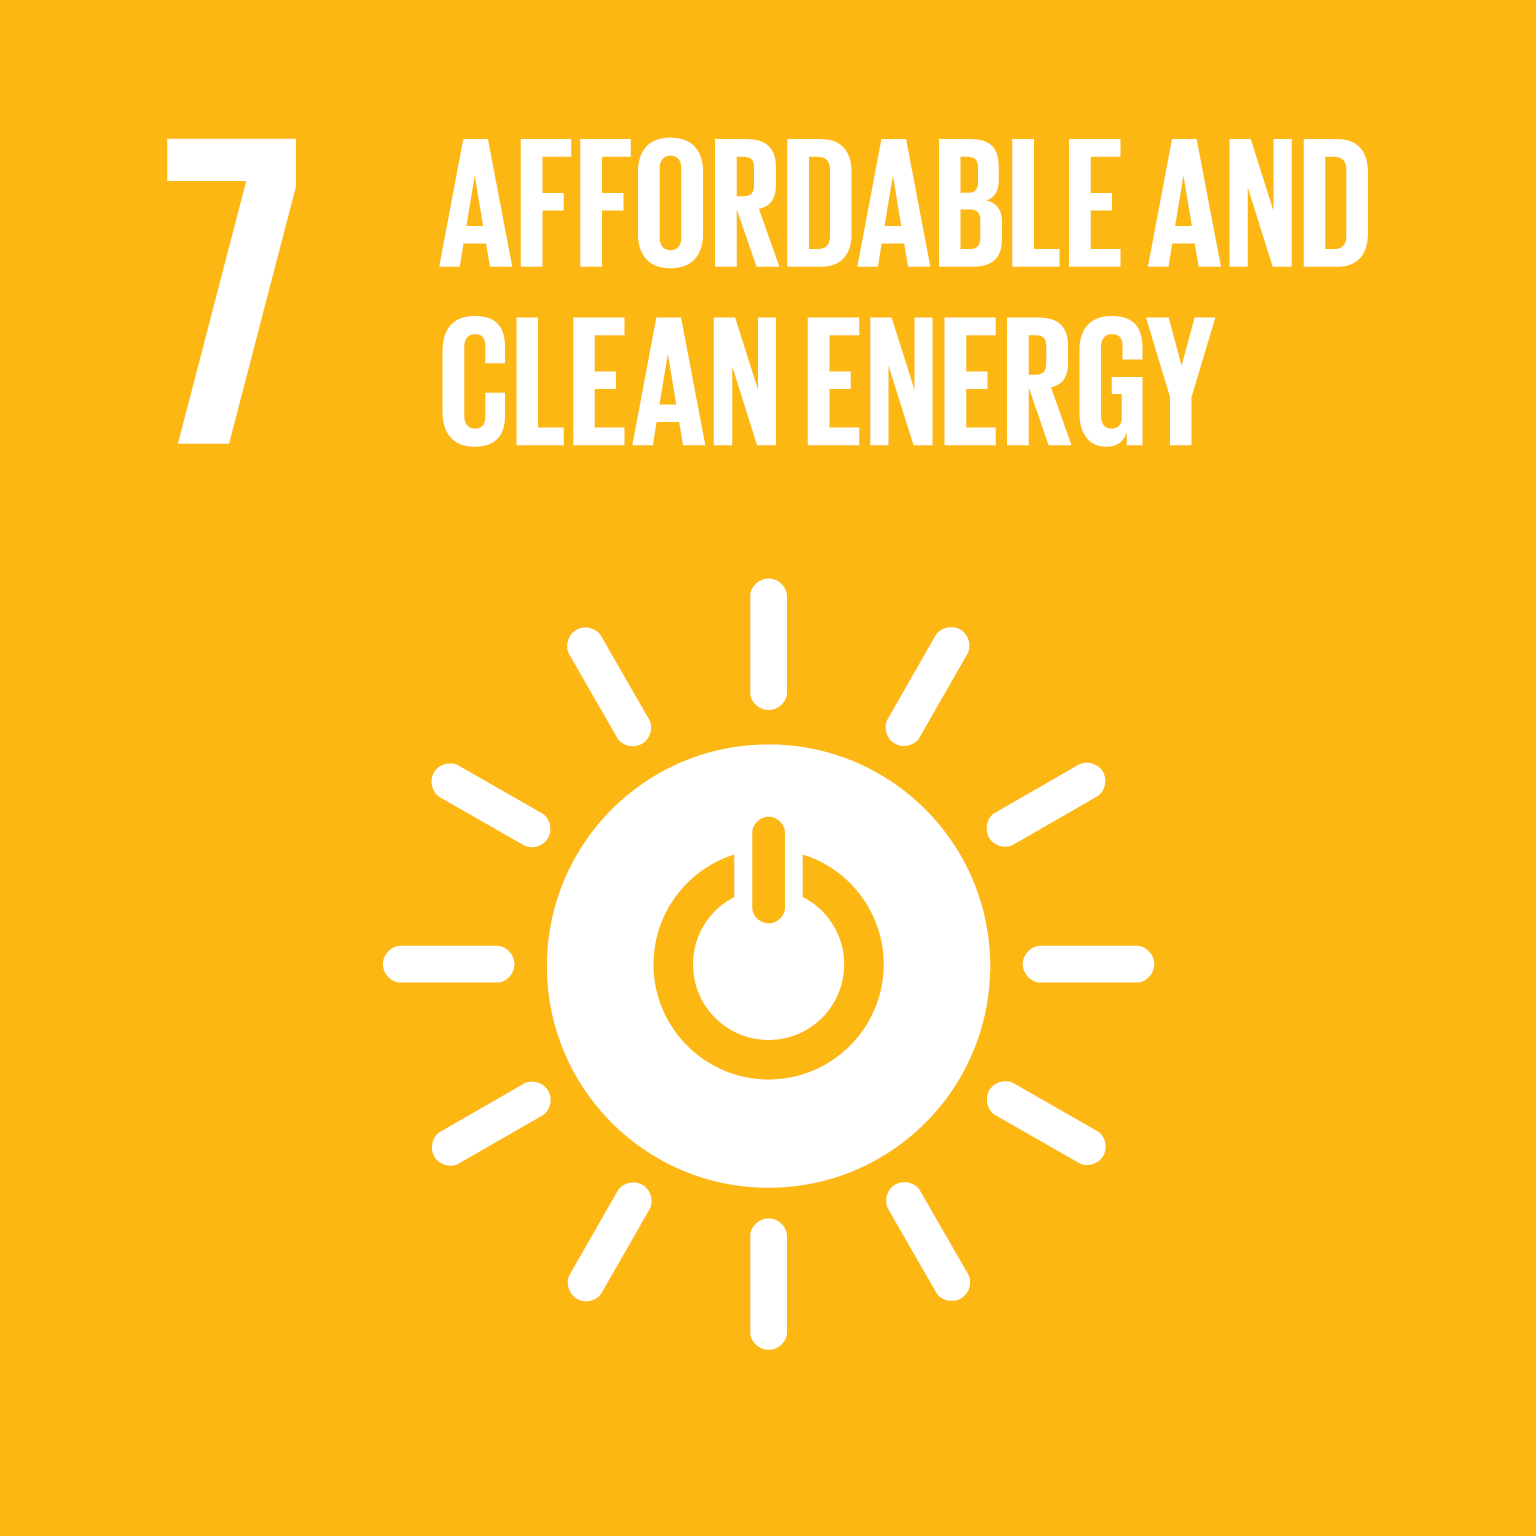 Goal 7: Affordable Clean Energy, the text of this infographic is listed below